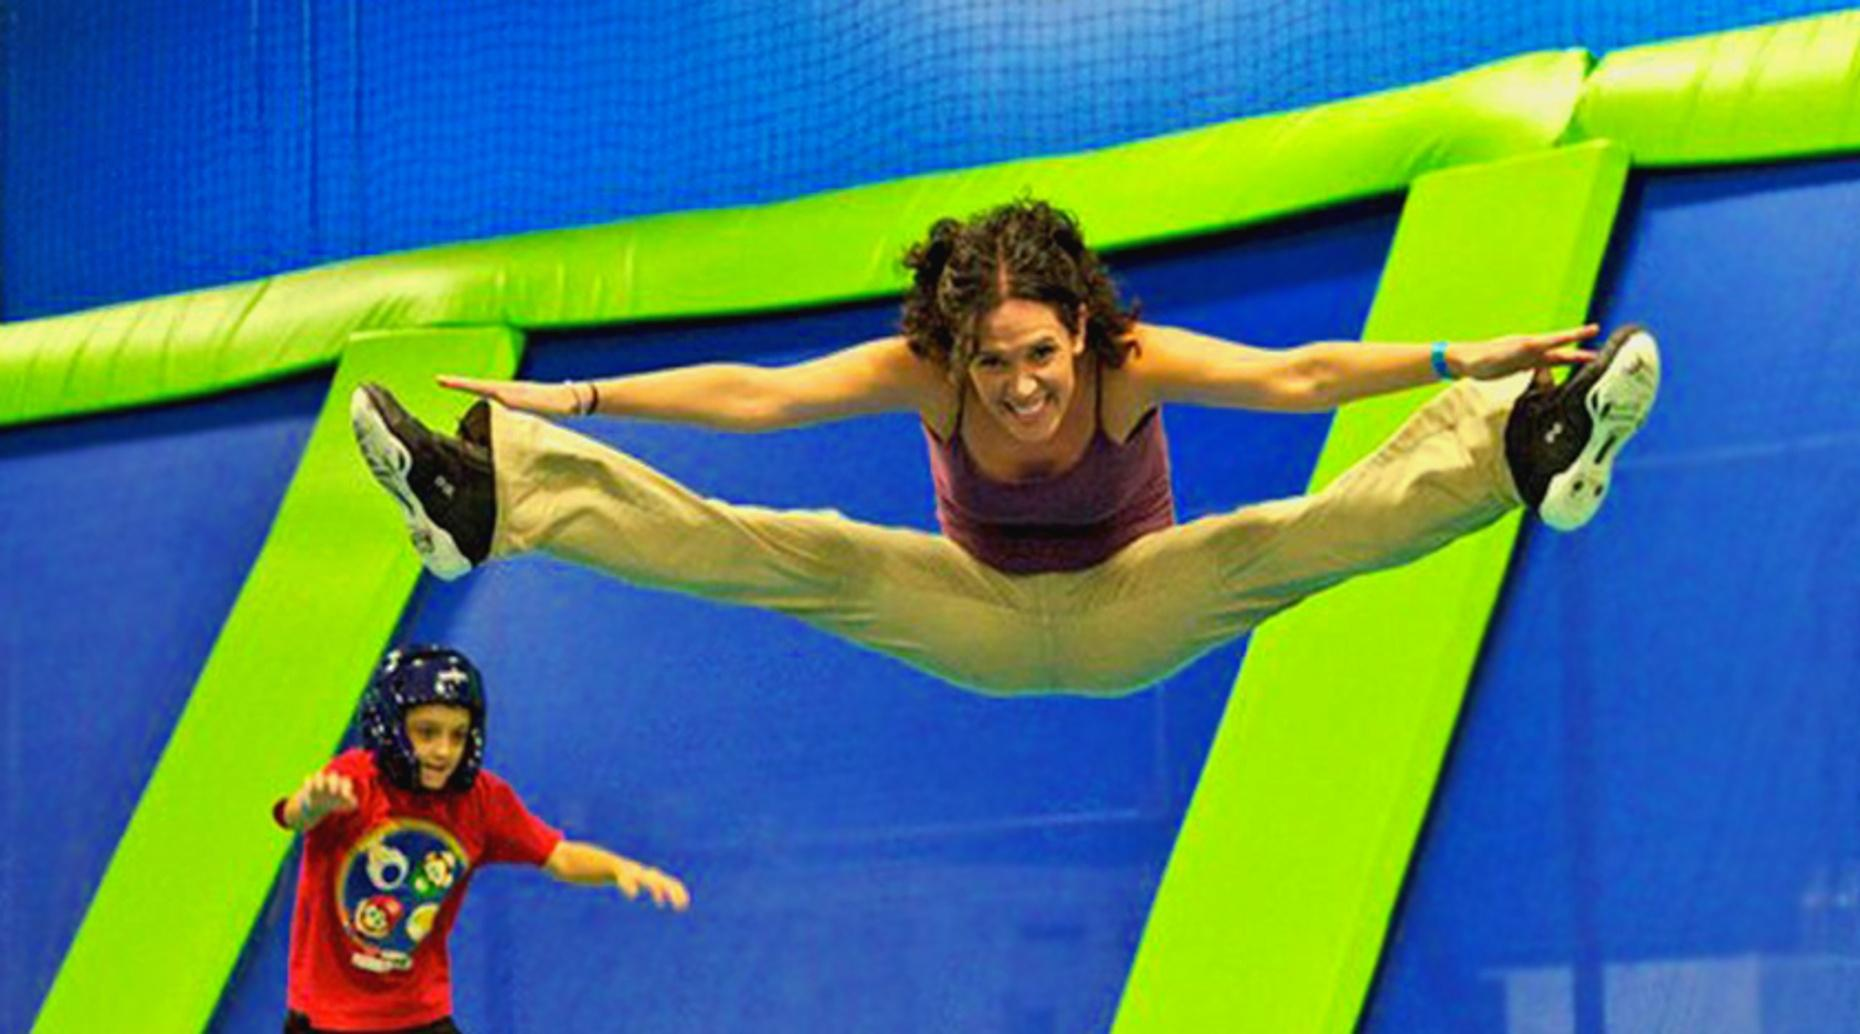 One-Day Trampoline Jumping Pass in Orlando